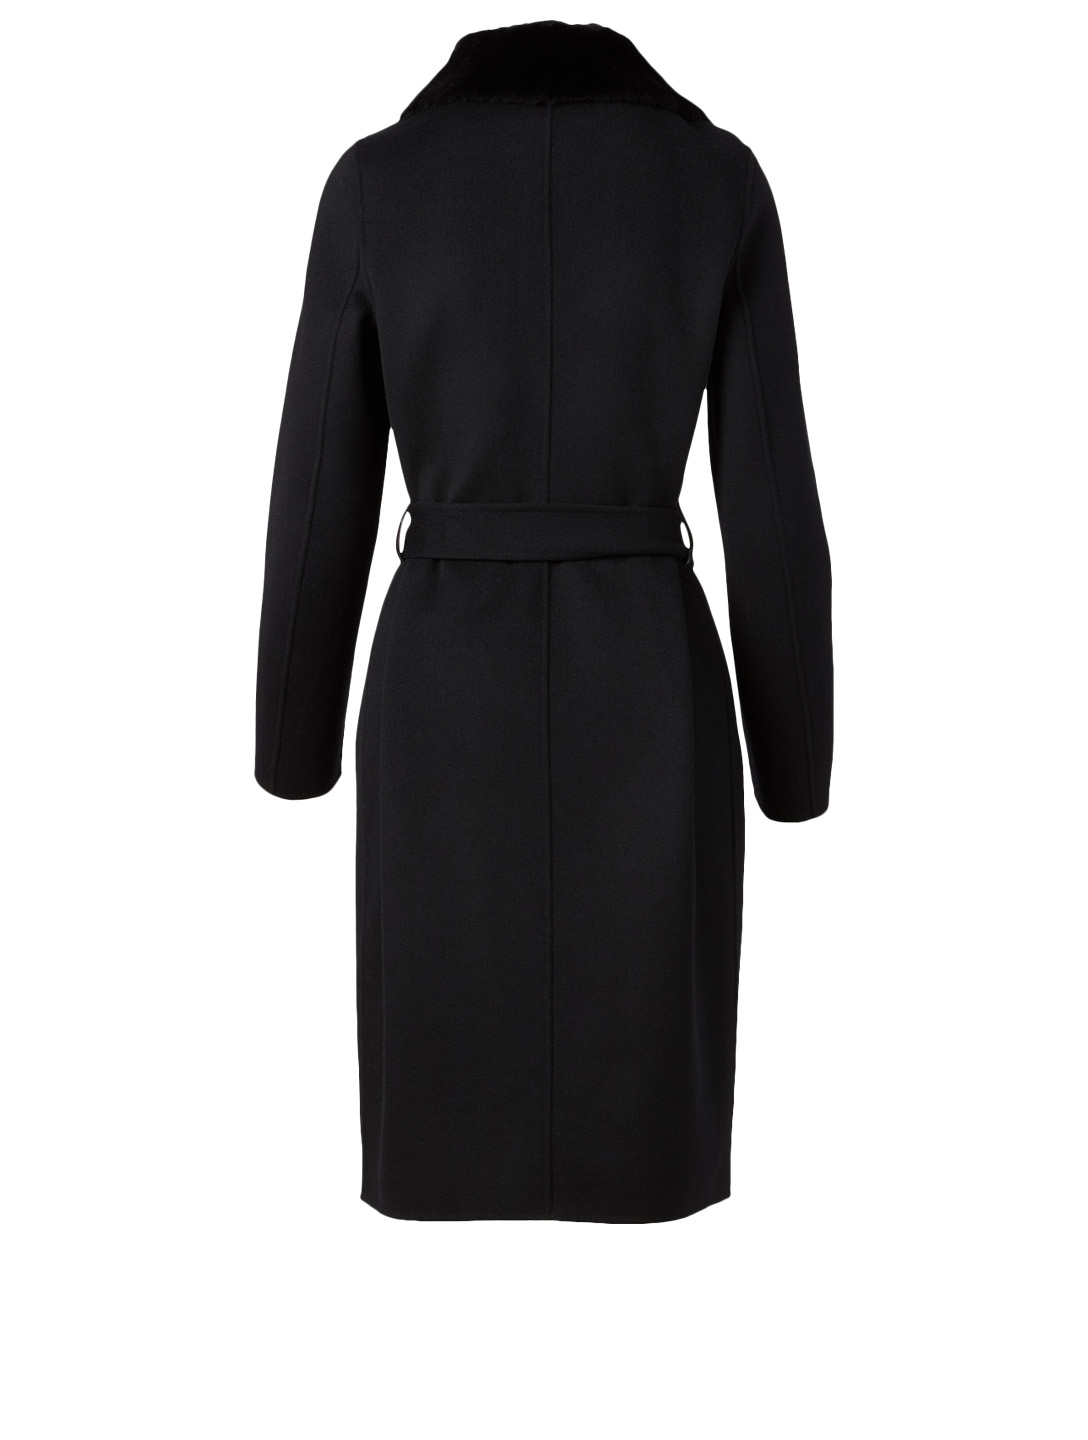 MACKAGE Sybil Wool Midi Coat Women's Black